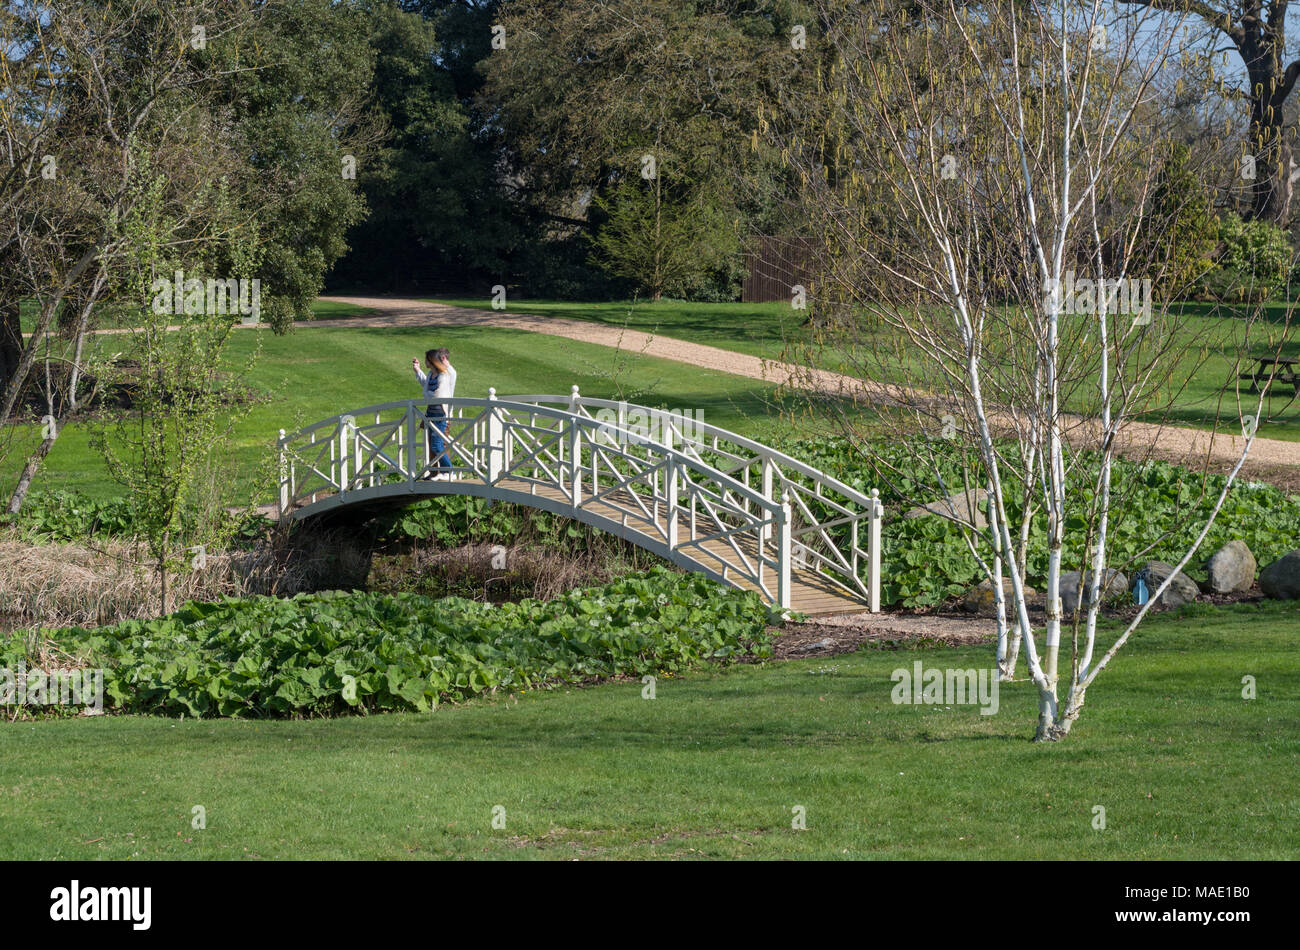 Elegant Young Couple Standing On A White Bridge Designed In The Chinese Style Which  Crosses The Bog Garden At Woburn Abbey Gardens, UK